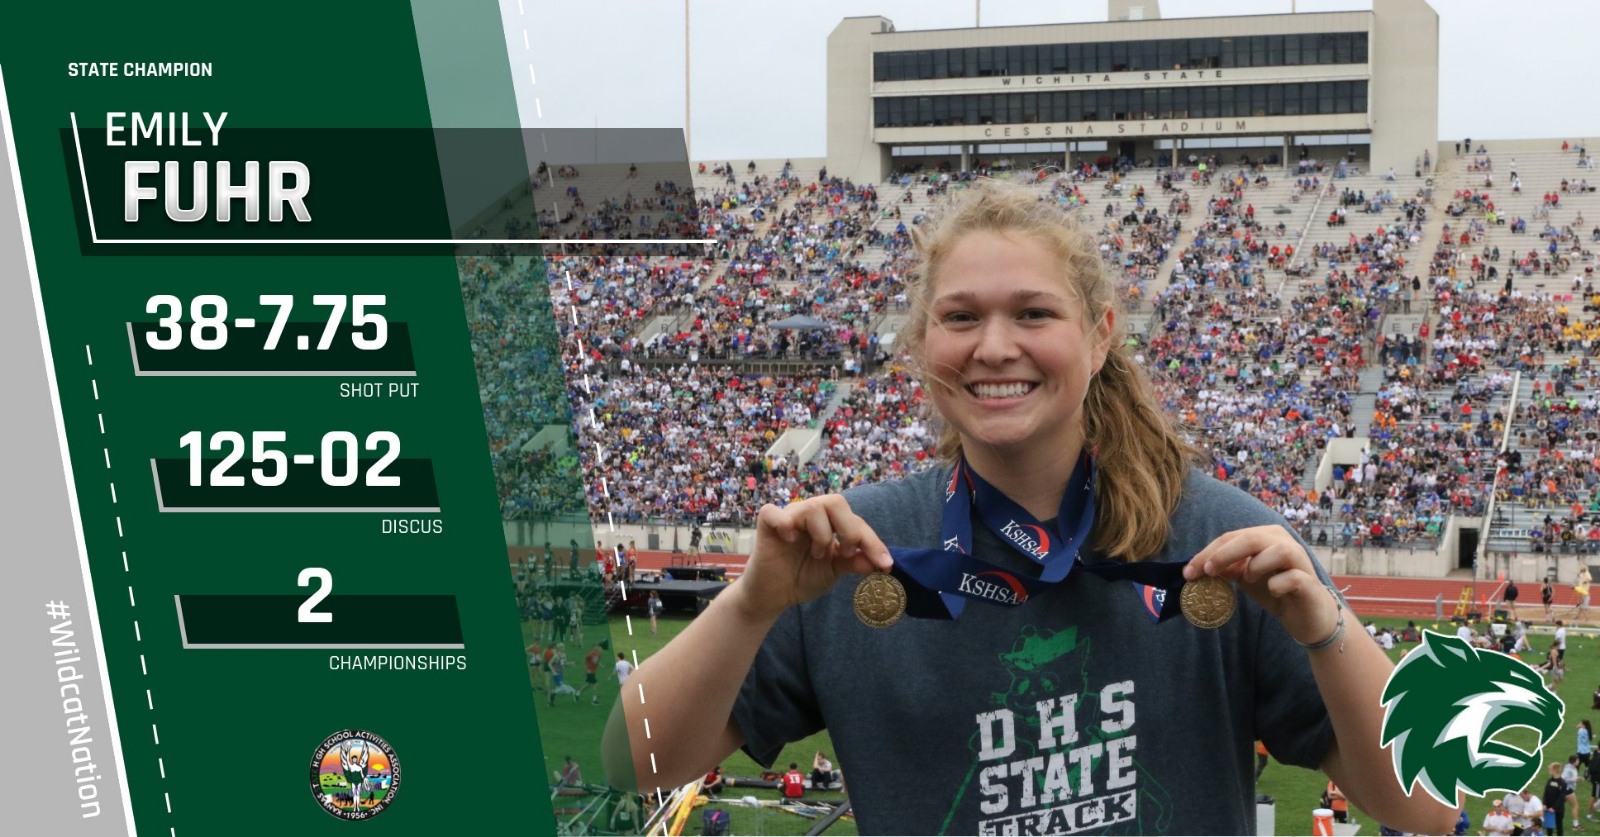 Emily Fuhr Wins Two State Championships